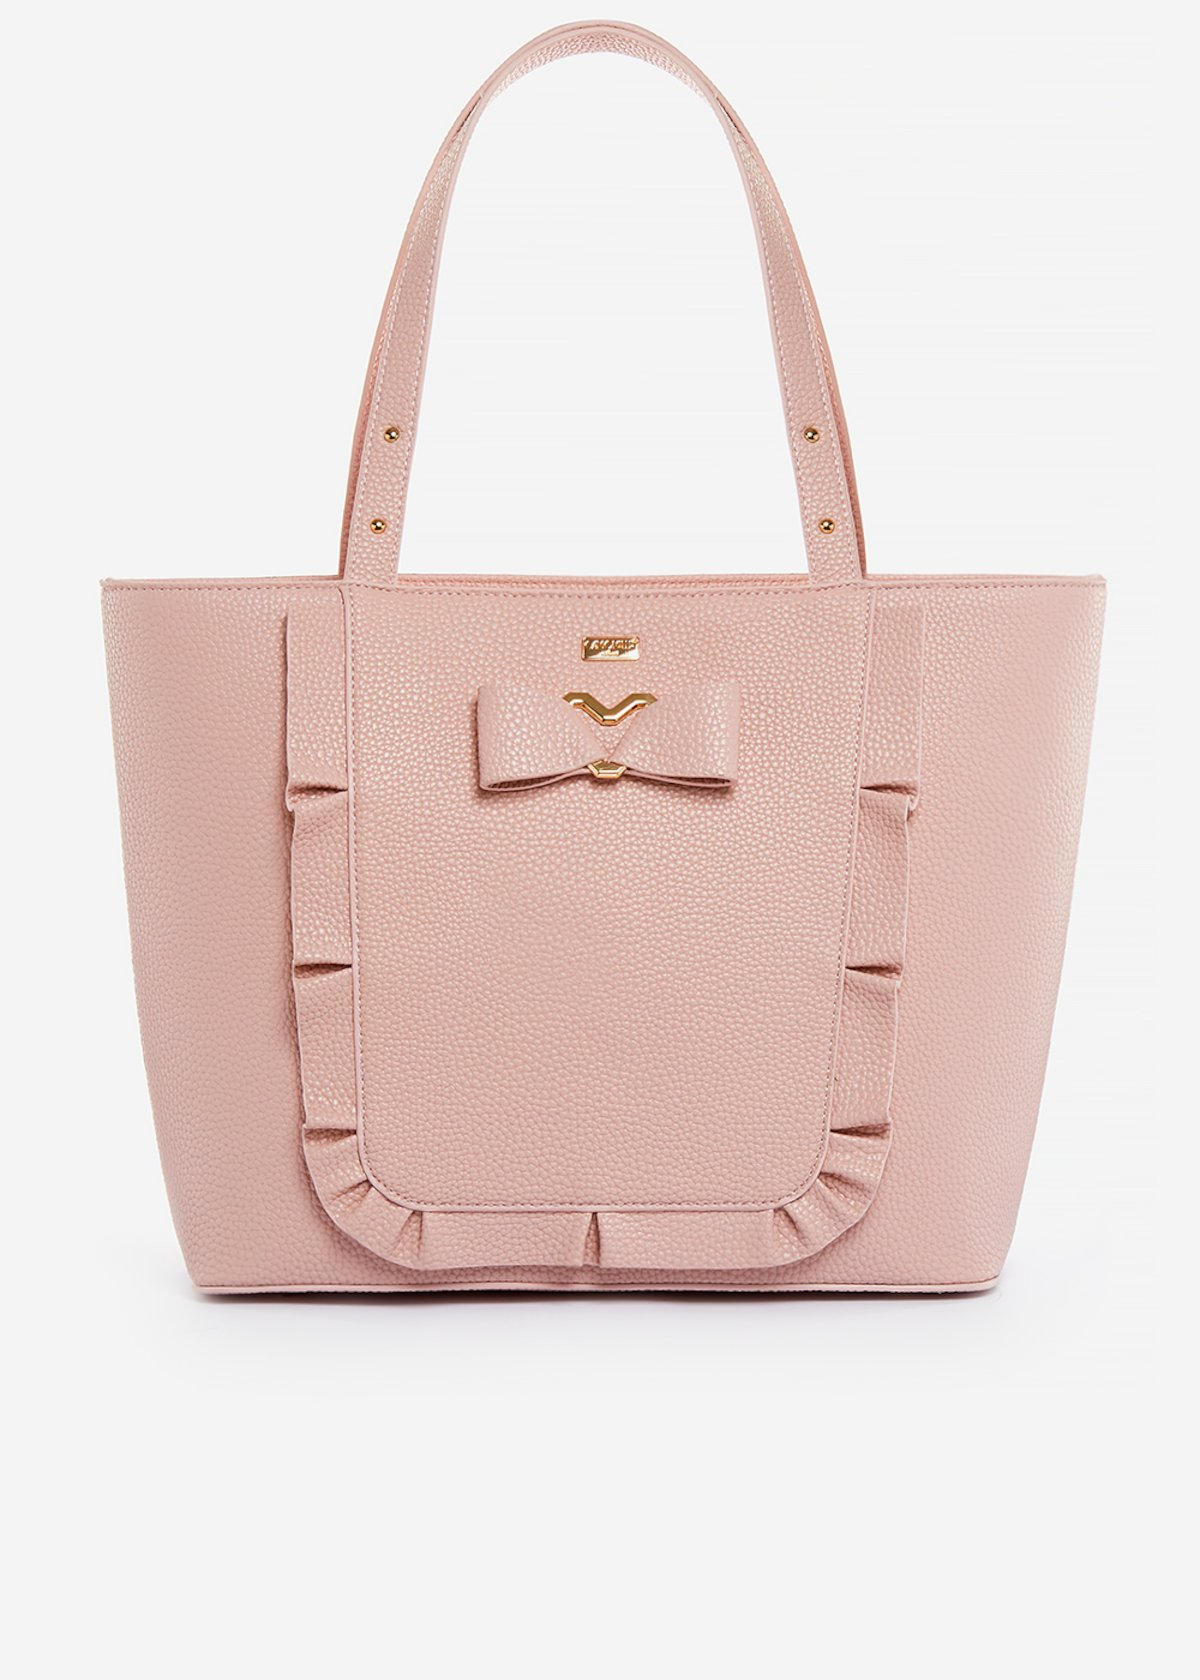 Faux-leather Briseide shopping bag with bow and ruffles. - magnolia